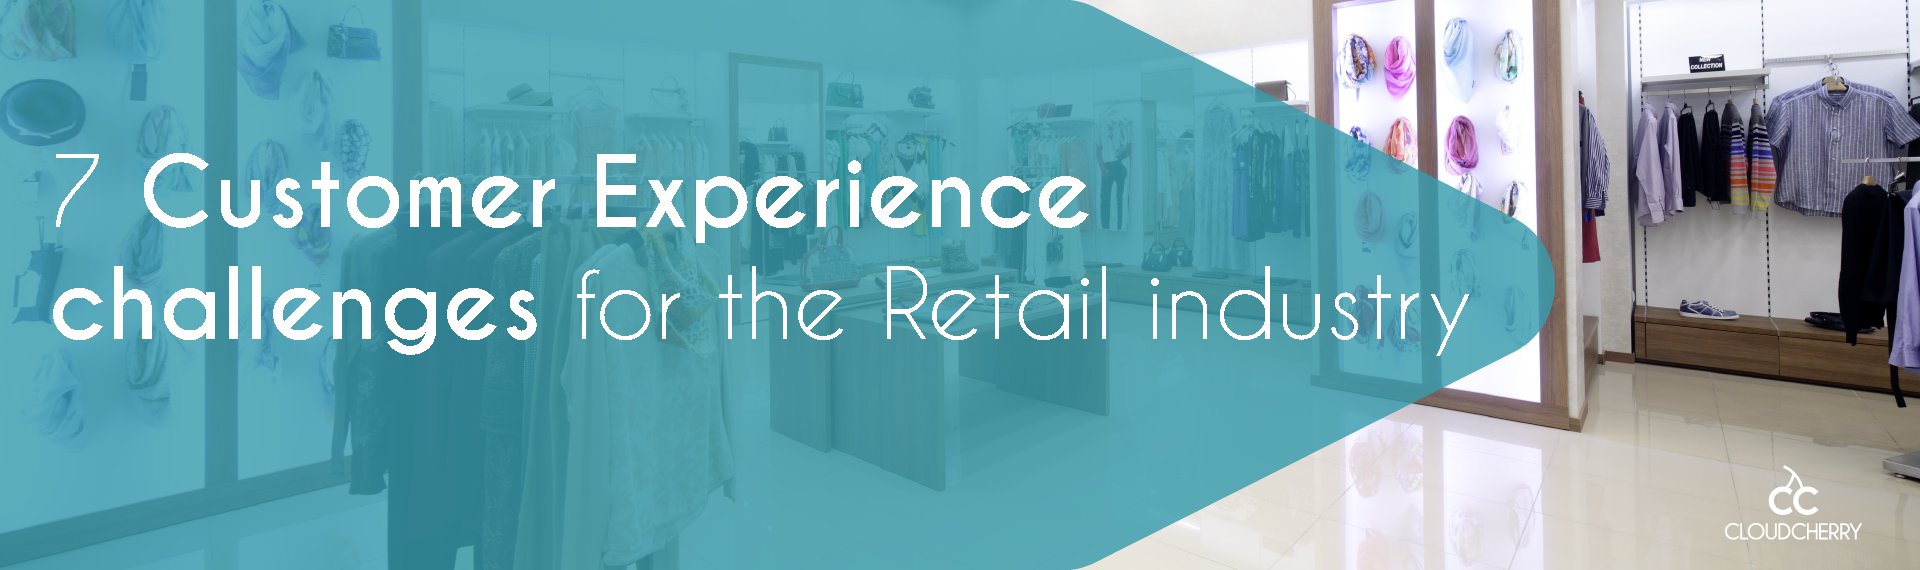 retail industry-01